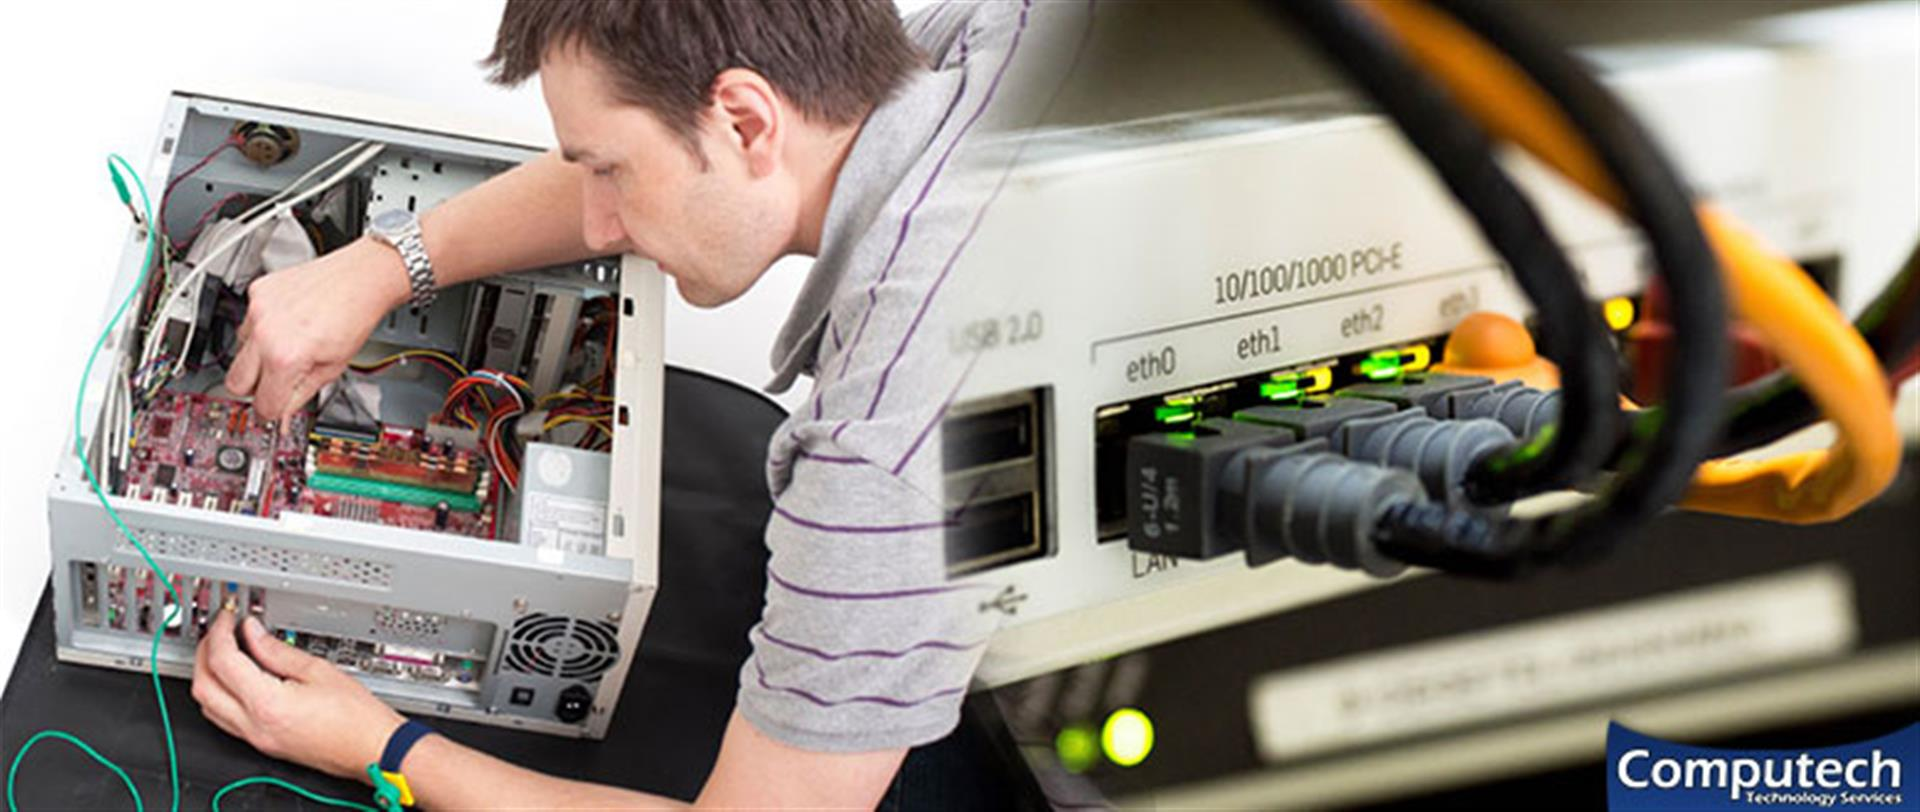 Mountain City Tennessee Onsite PC & Printer Repairs, Network, Voice & Data Cabling Services